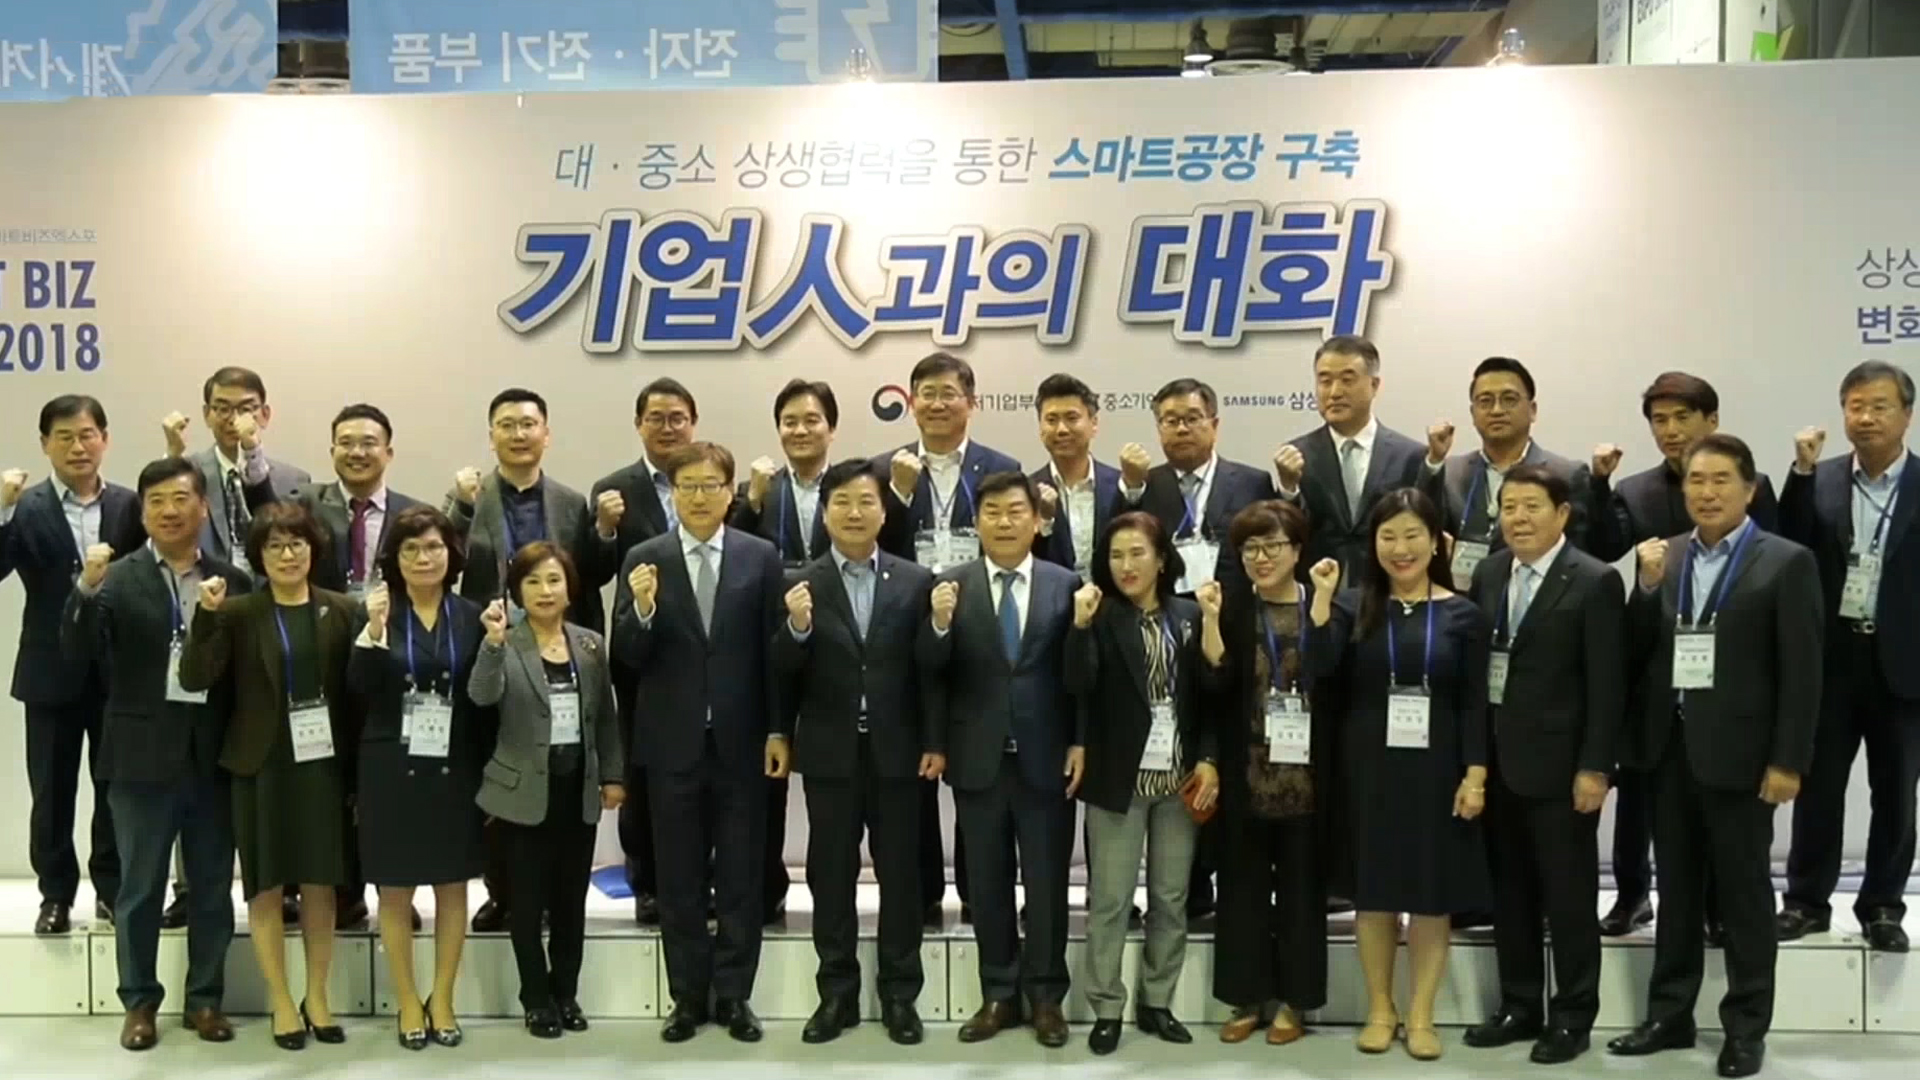 [Money Monster] Smart Biz Expo 2018, mutual growth of major & small businesses